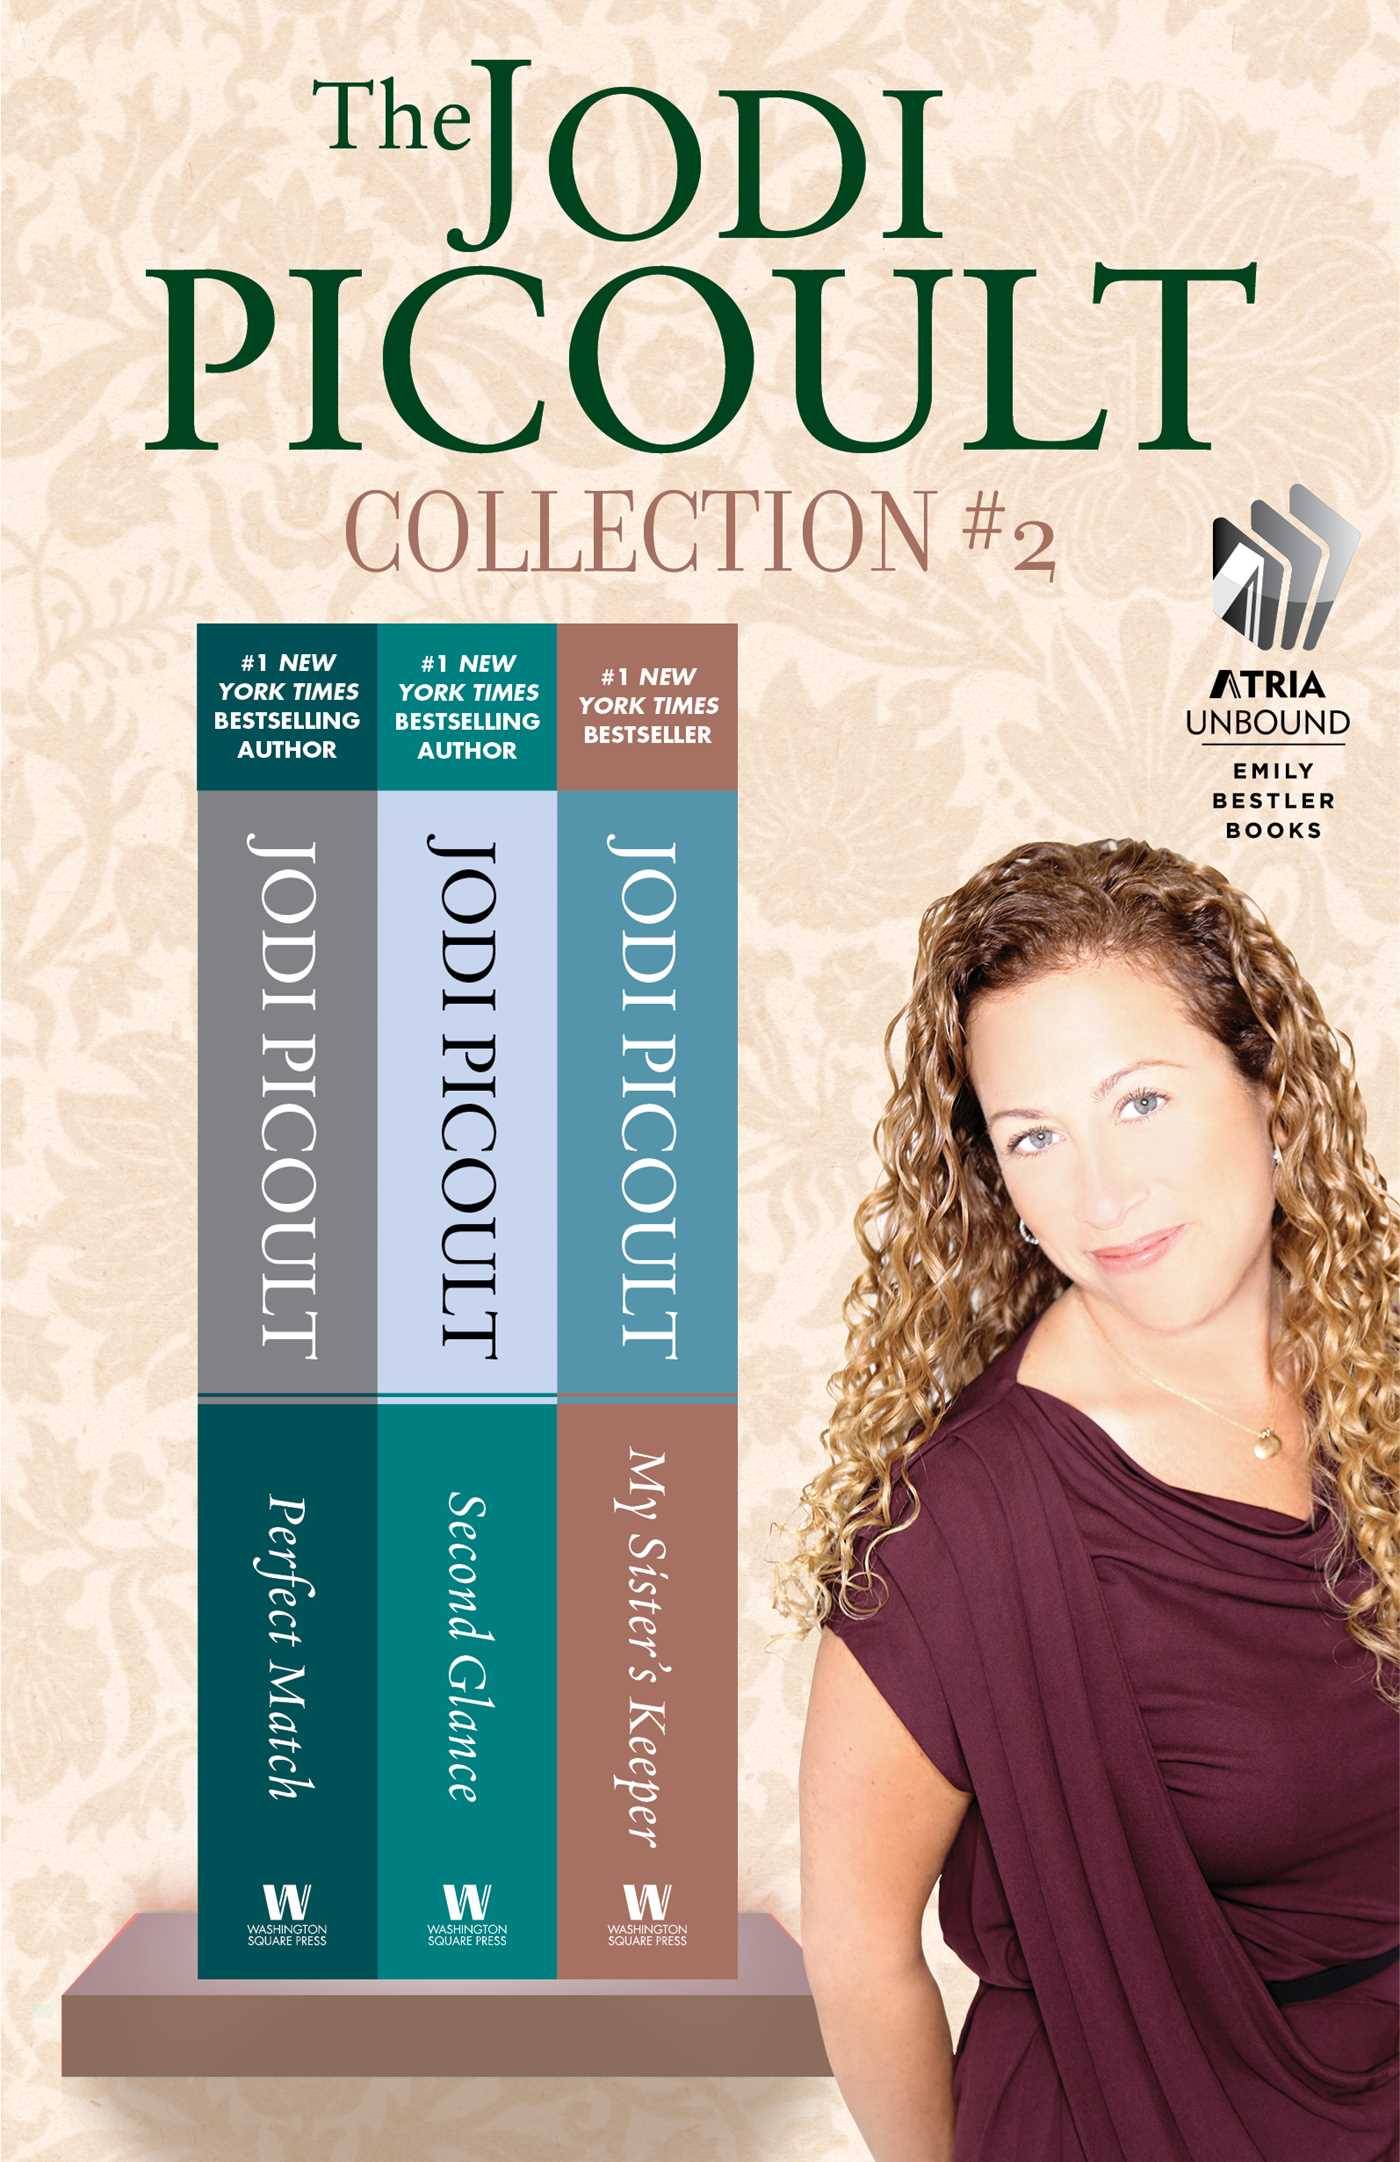 Jodi picoult official publisher page simon schuster canada book cover image jpg the jodi picoult collection 2 ebook 9781476703879 fandeluxe Gallery